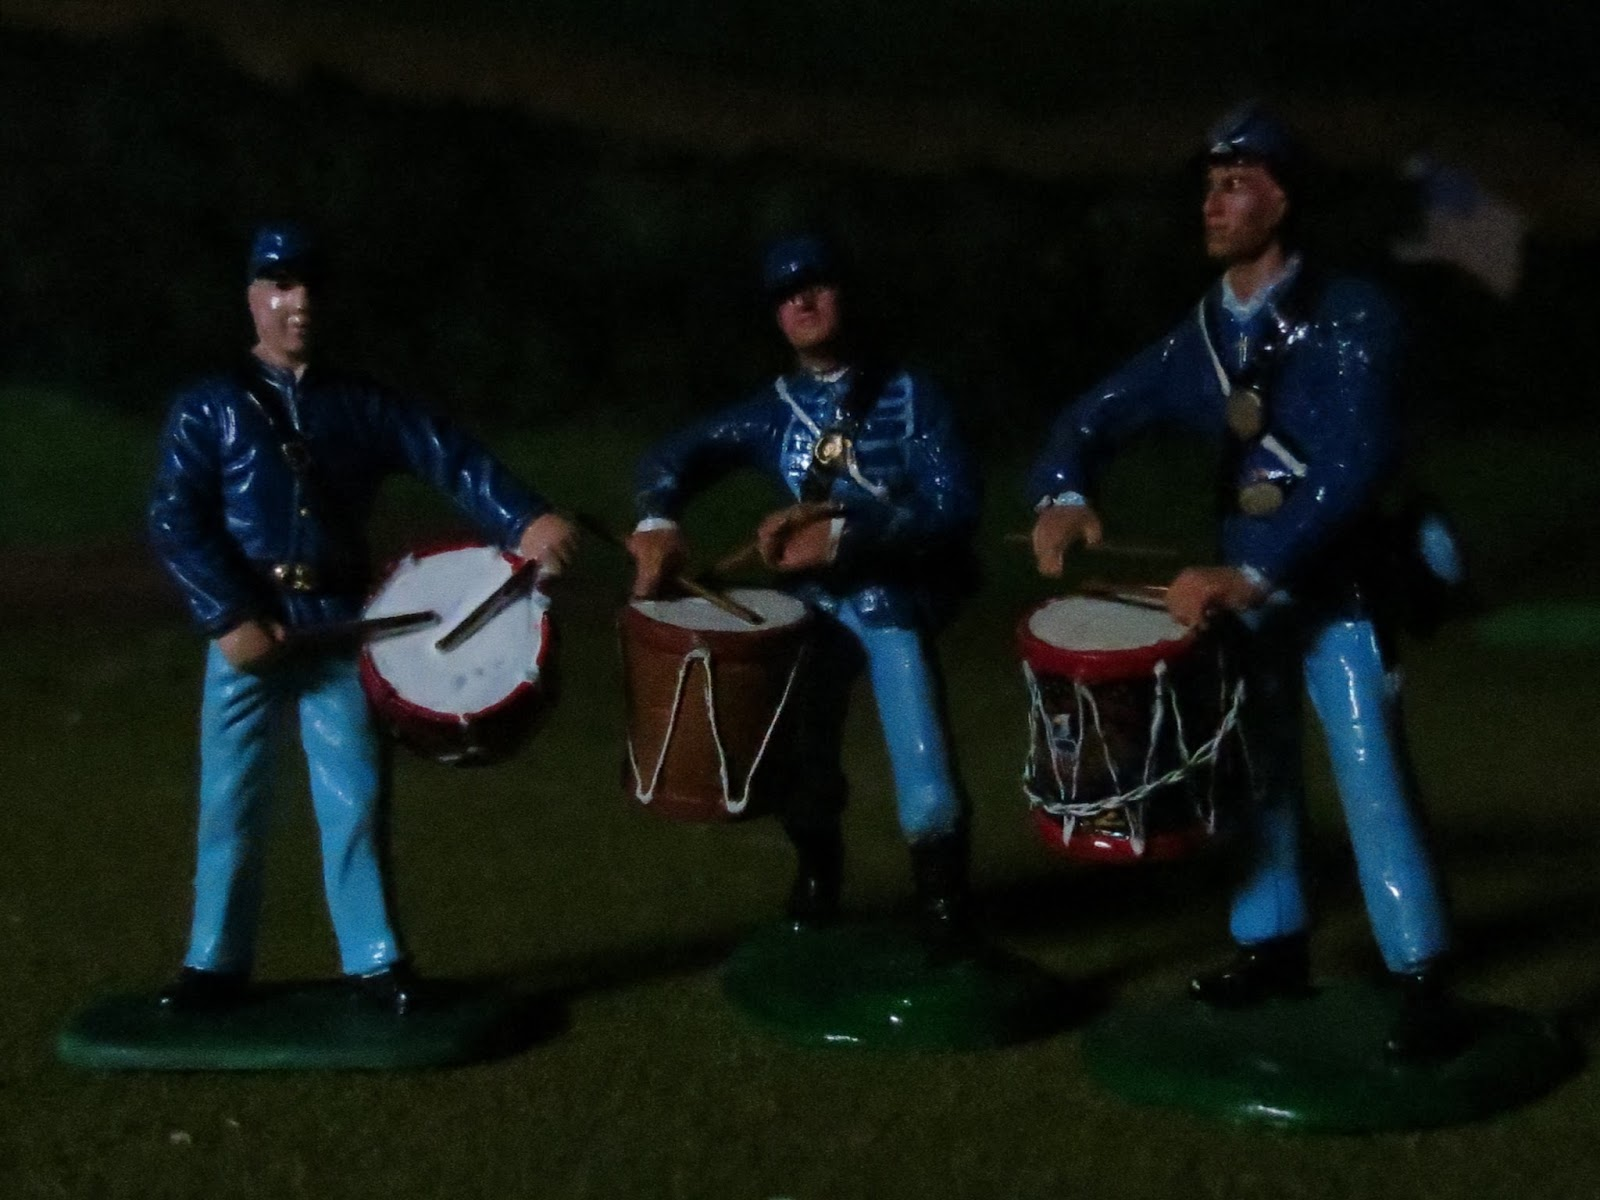 Mannie Gentile Toy Soldiers Forever  Tenting on the old c&ground...  & Mannie Gentile: Toy Soldiers Forever: